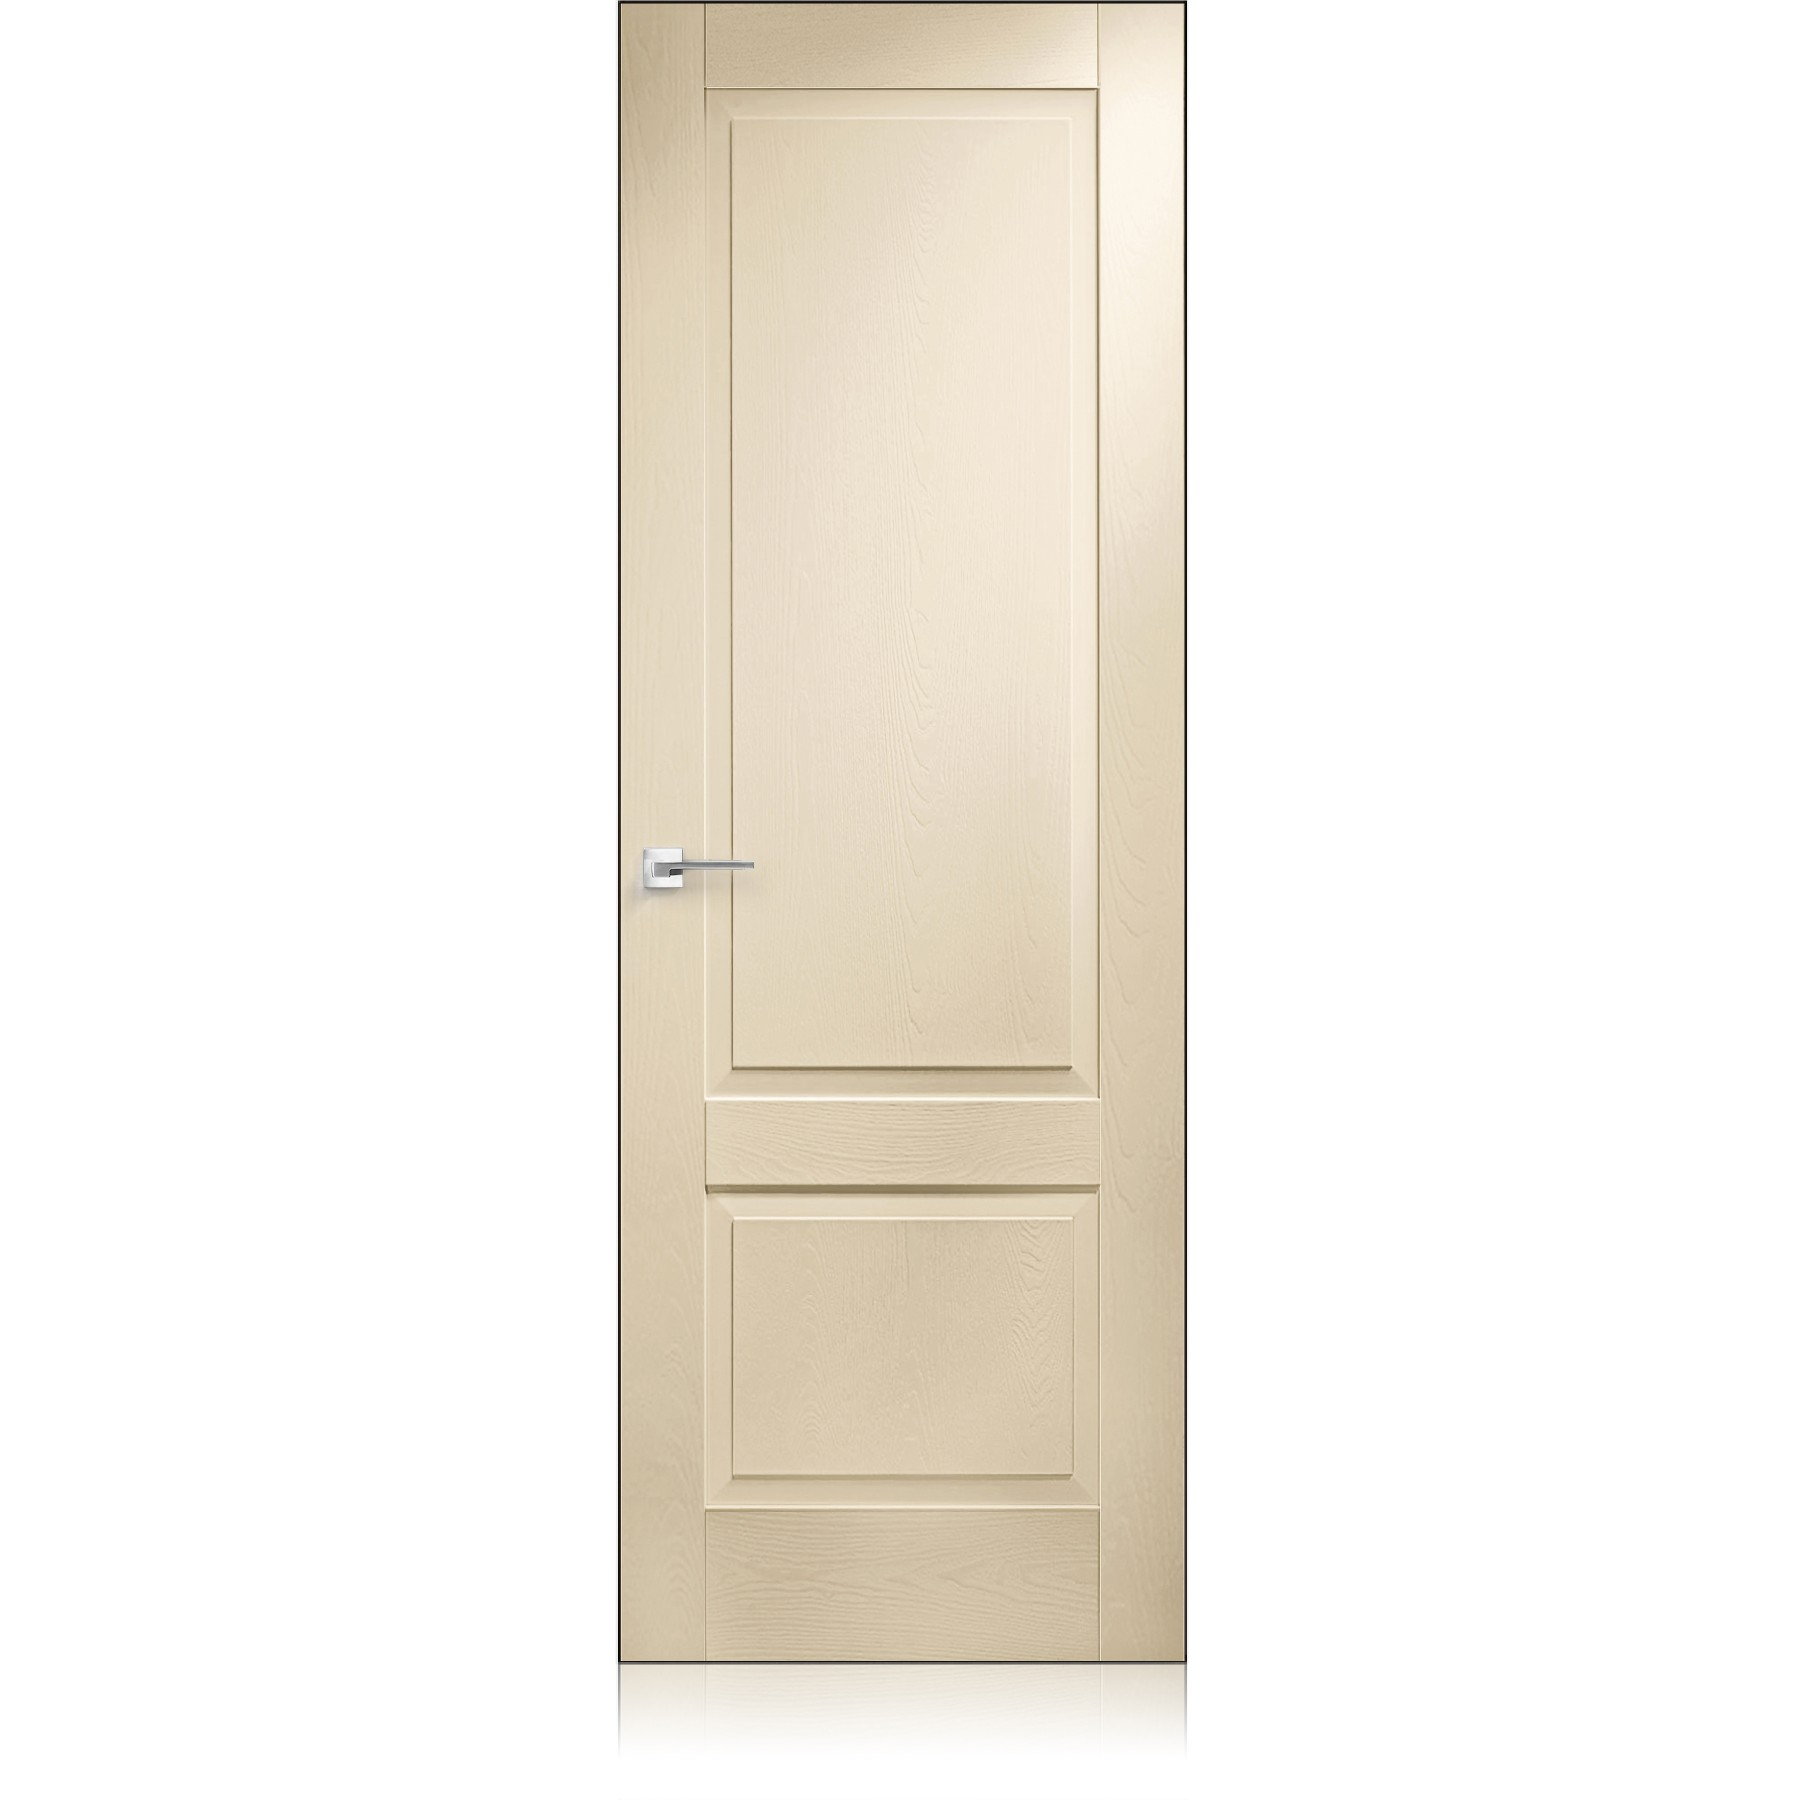 Suite / 22 Zero trame cremy door